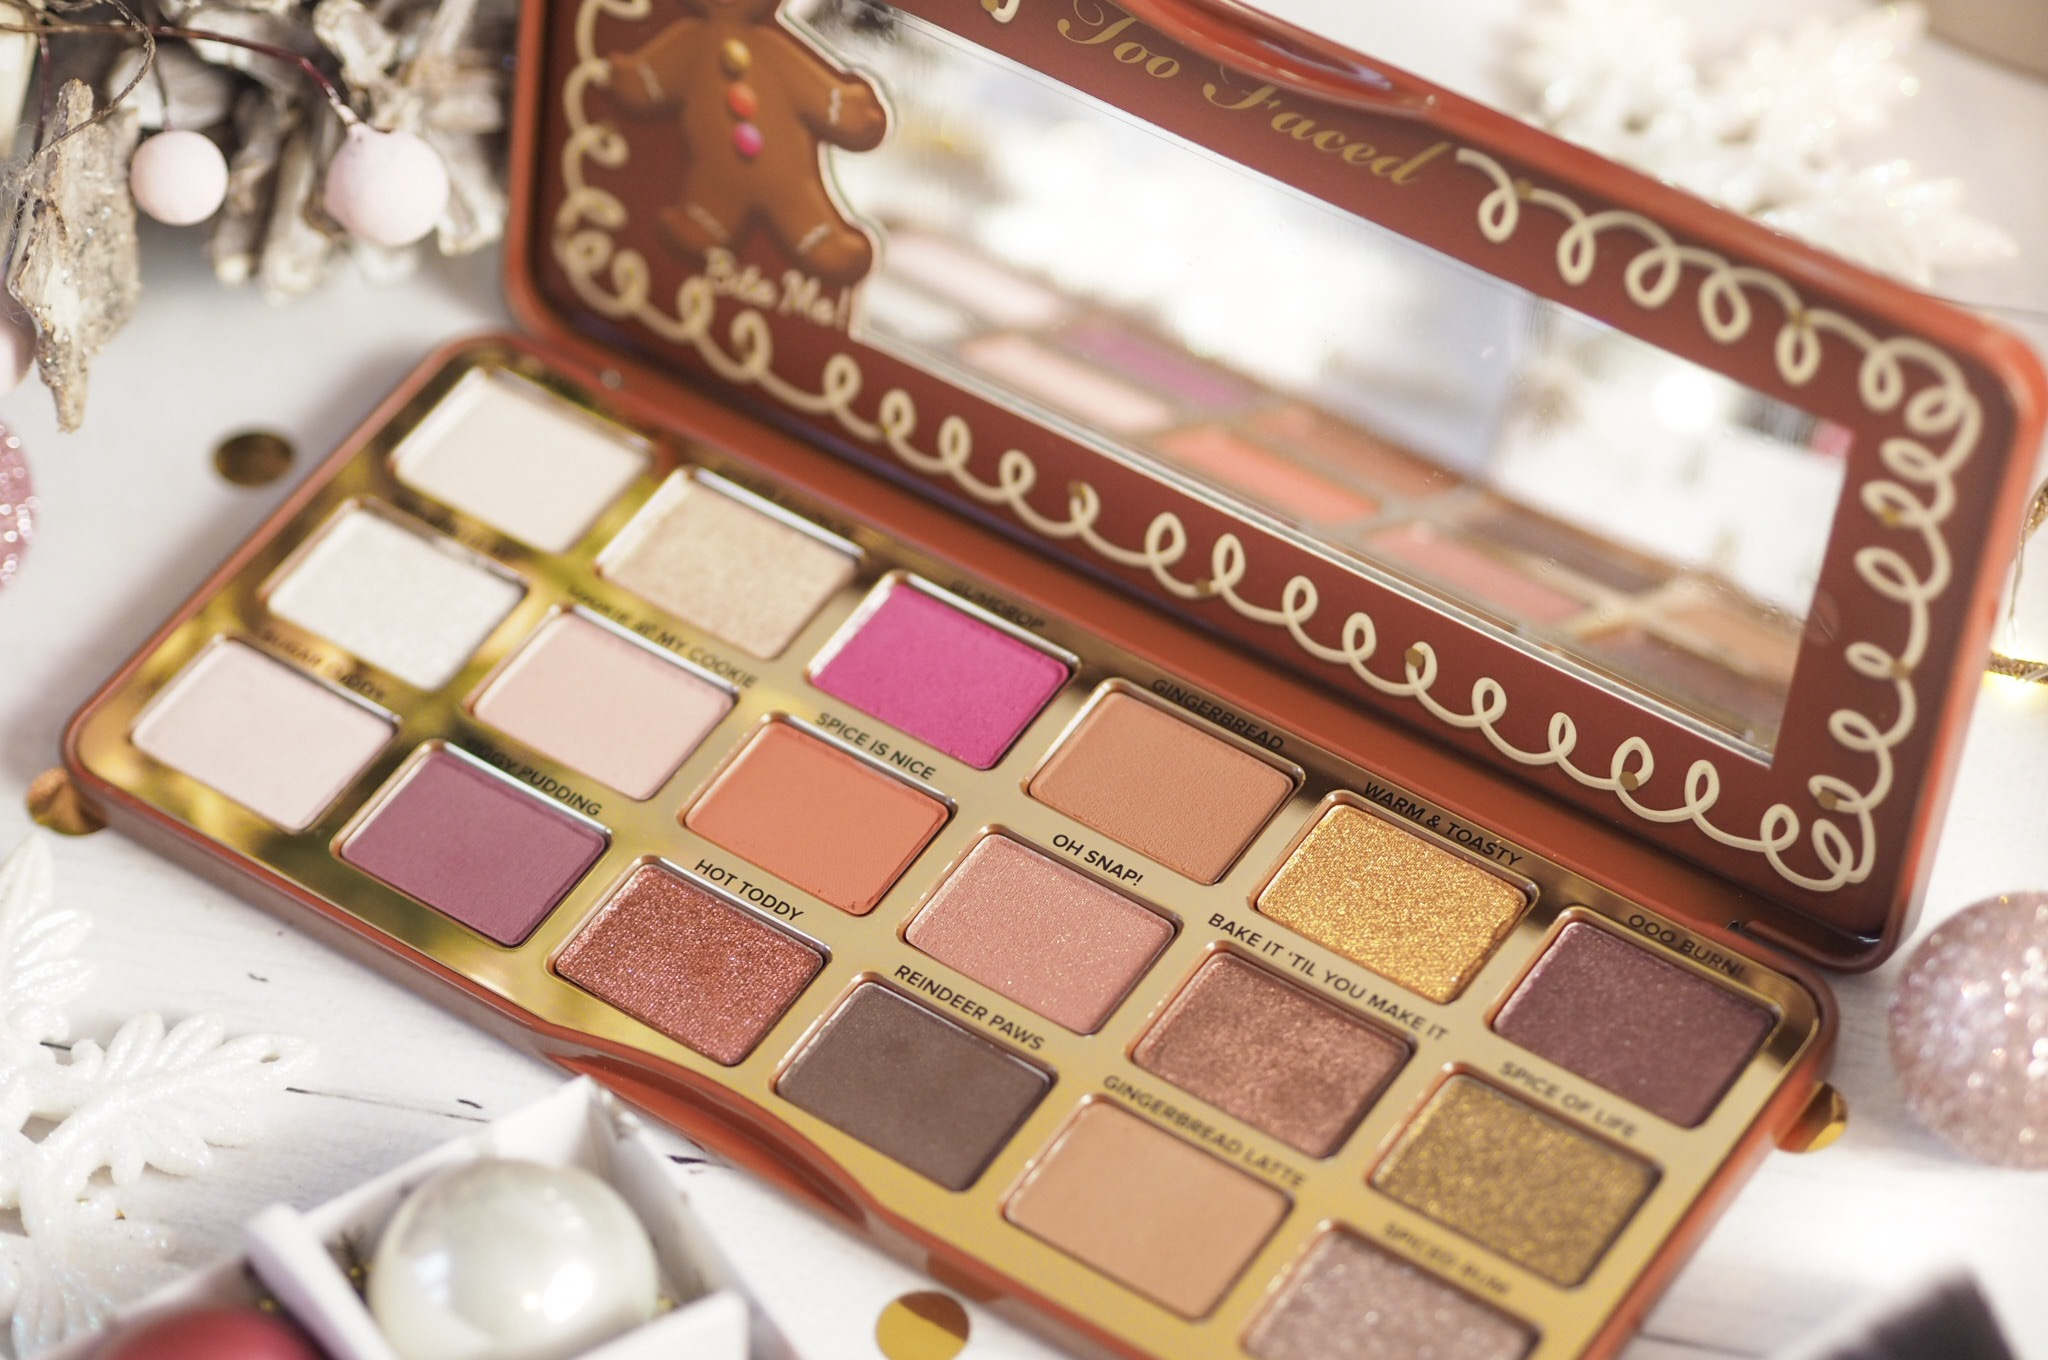 Too Faced Gingerbread Palette Review